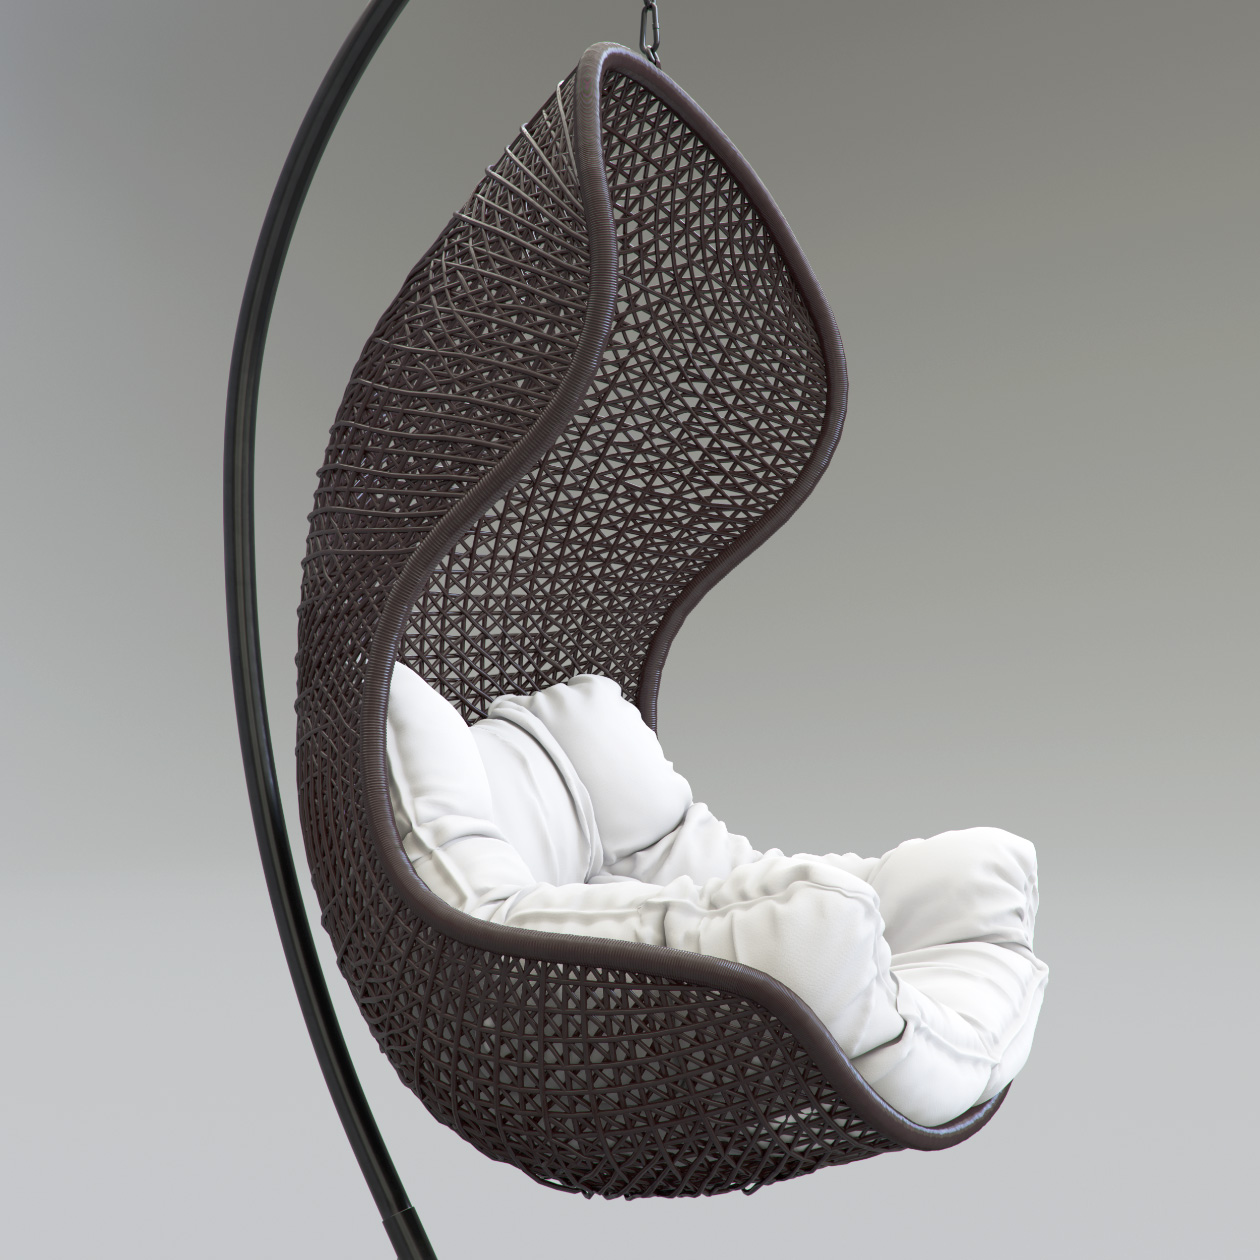 Parlay Chair 3D Model side